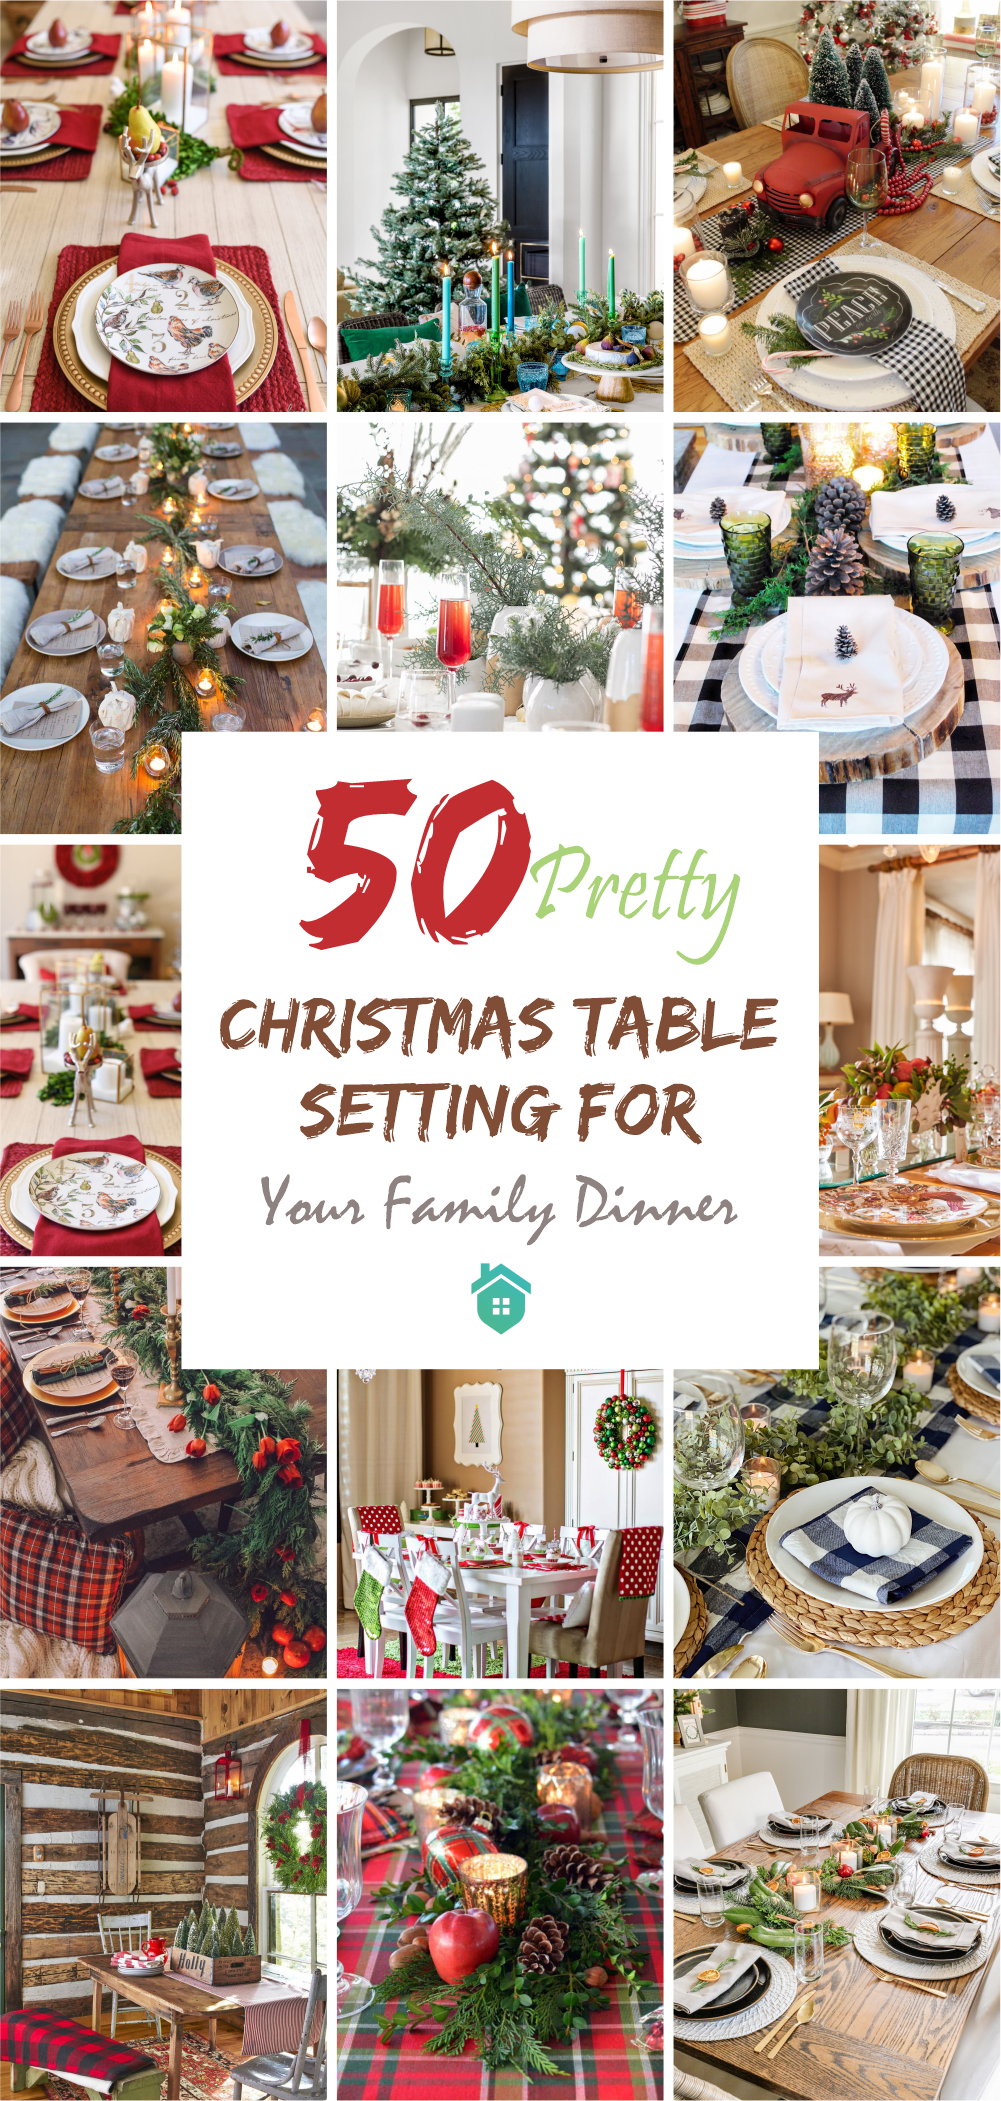 50 pretty christmas table setting for your family dinner5